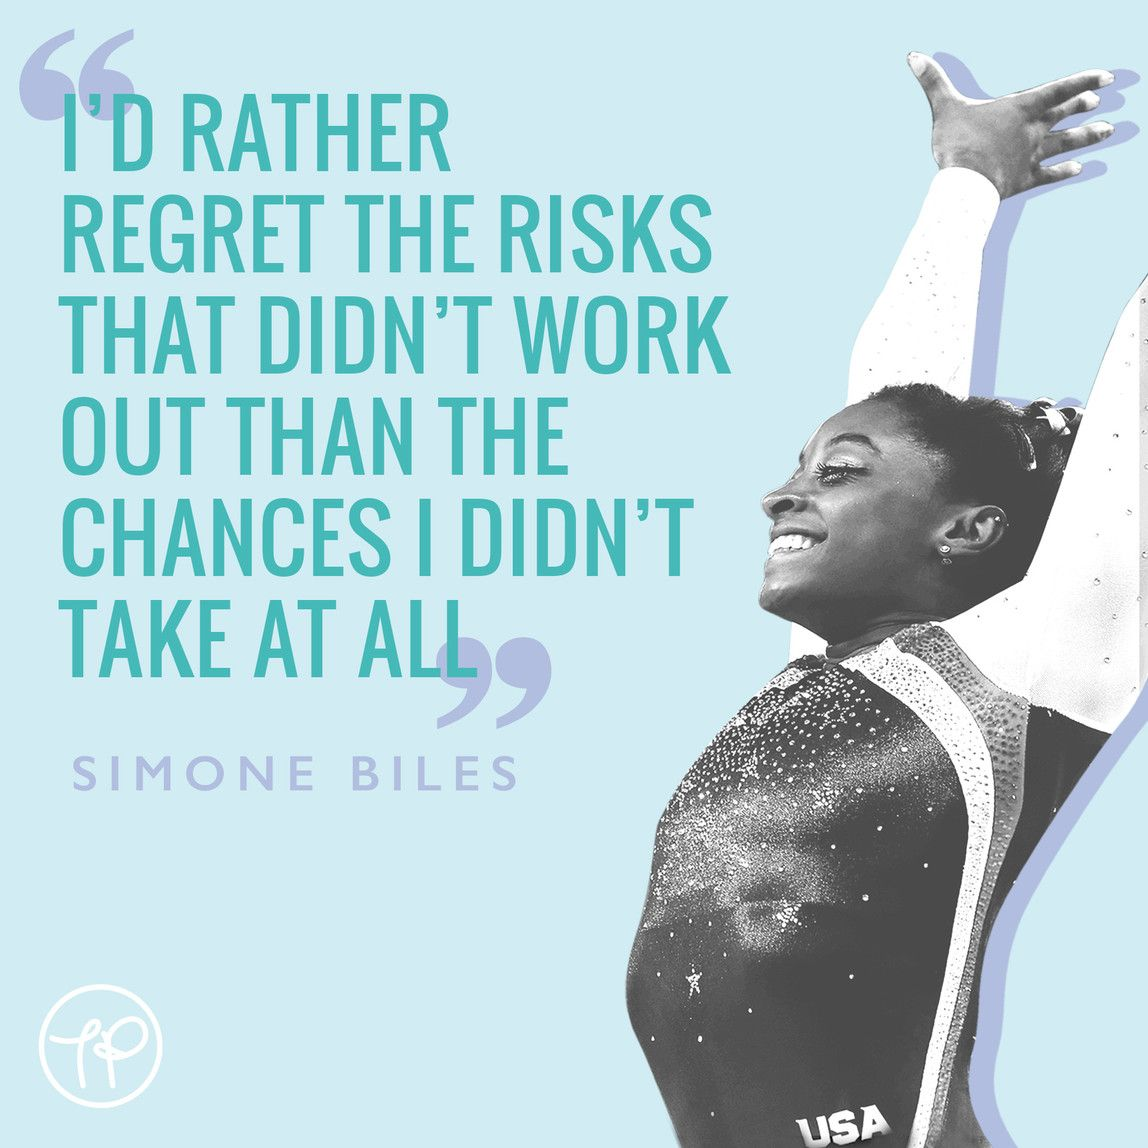 Inspirational Sports Quotes About Life: Gymnastics Quotes, Sport